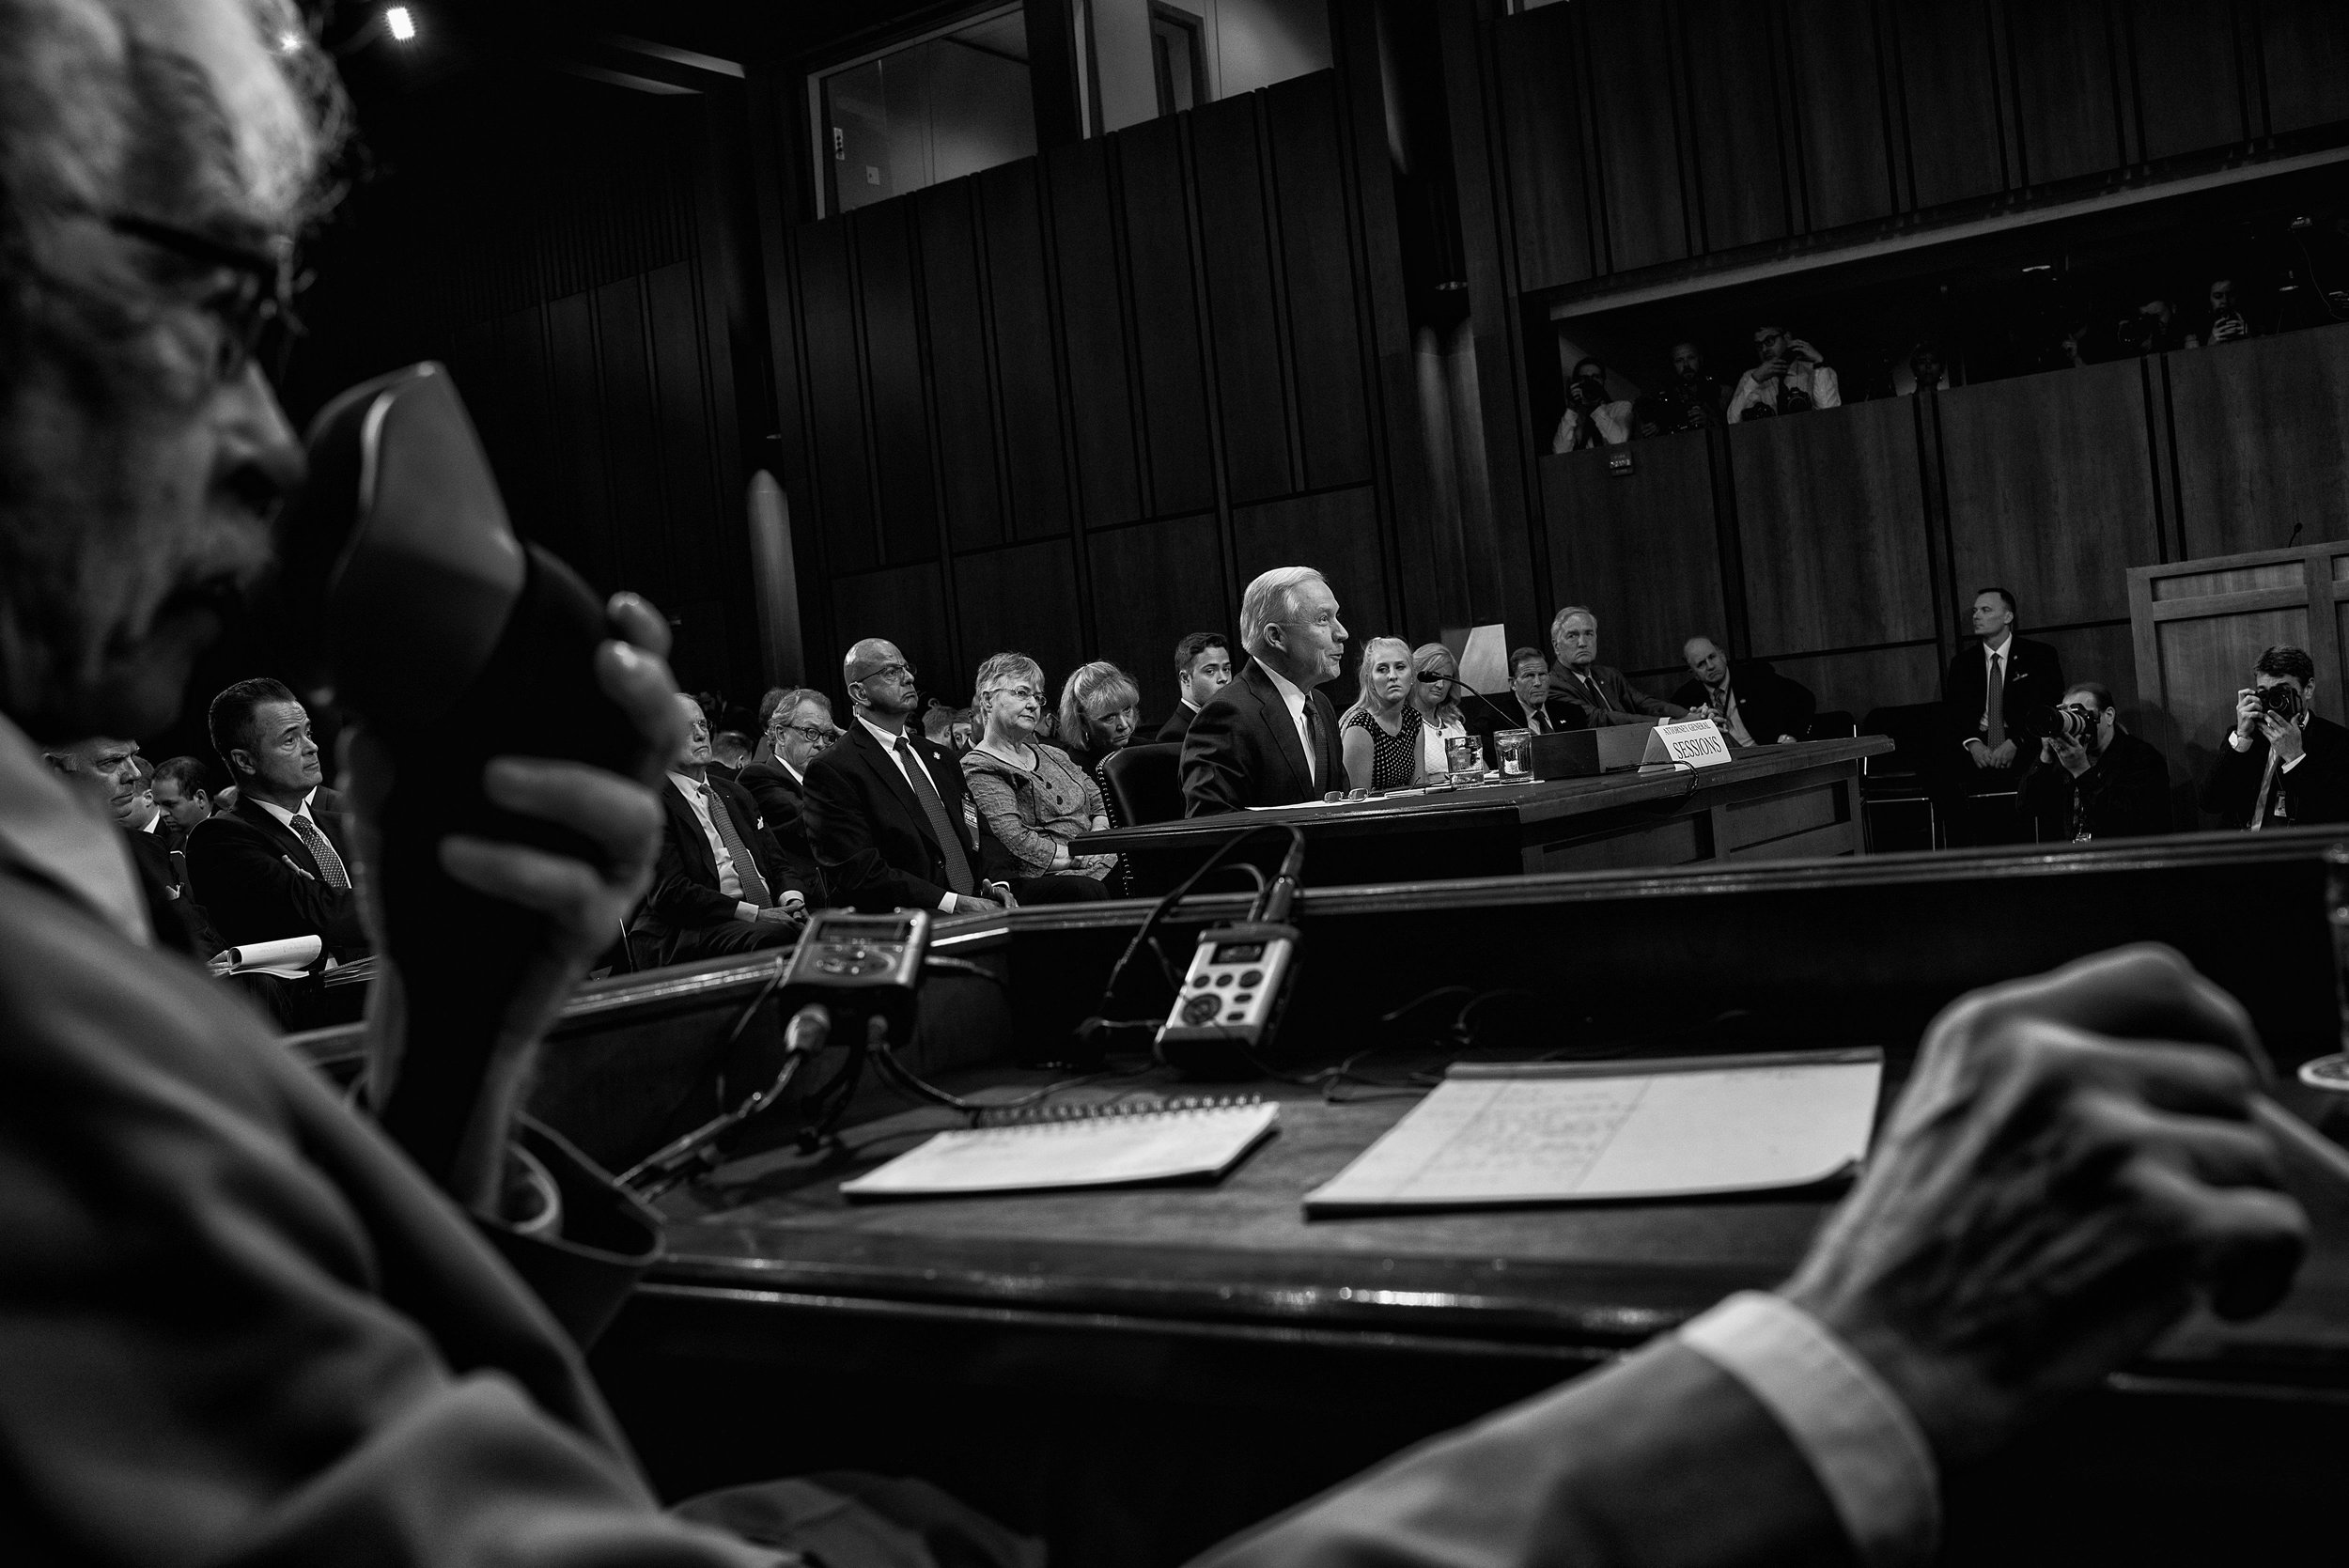 Day 145: Attorney General Jeff Sessions testifies before the Senate Intelligence Committee at the Hart Senate Office Building in Washington, DC on June 13, 2017.